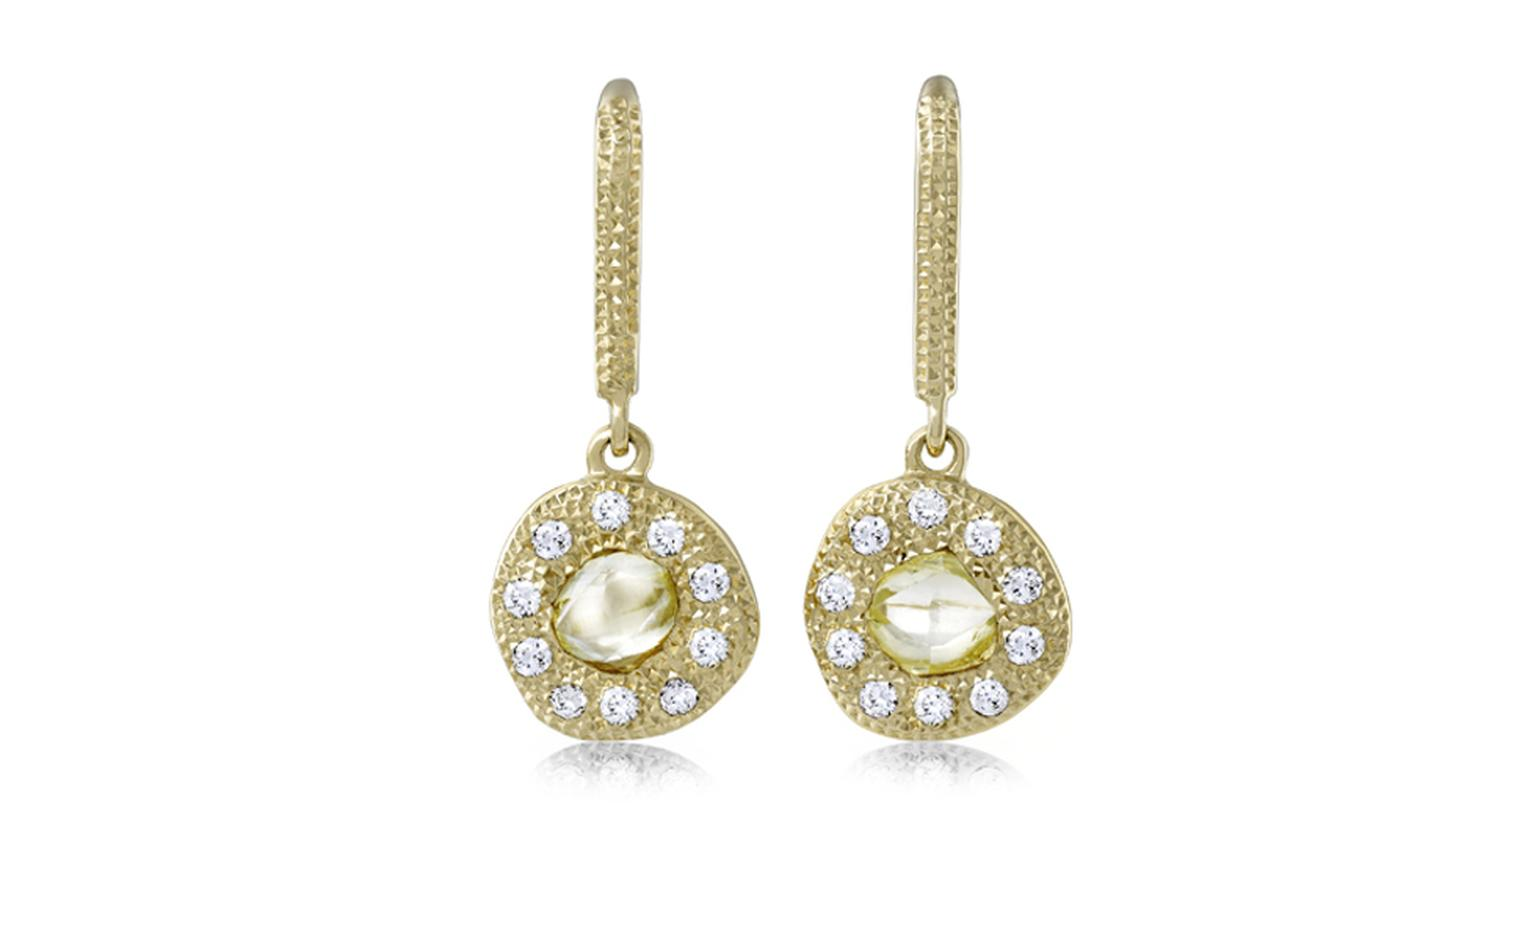 De Beers Talisman Solitaire Earrings in yellow gold. £2,475